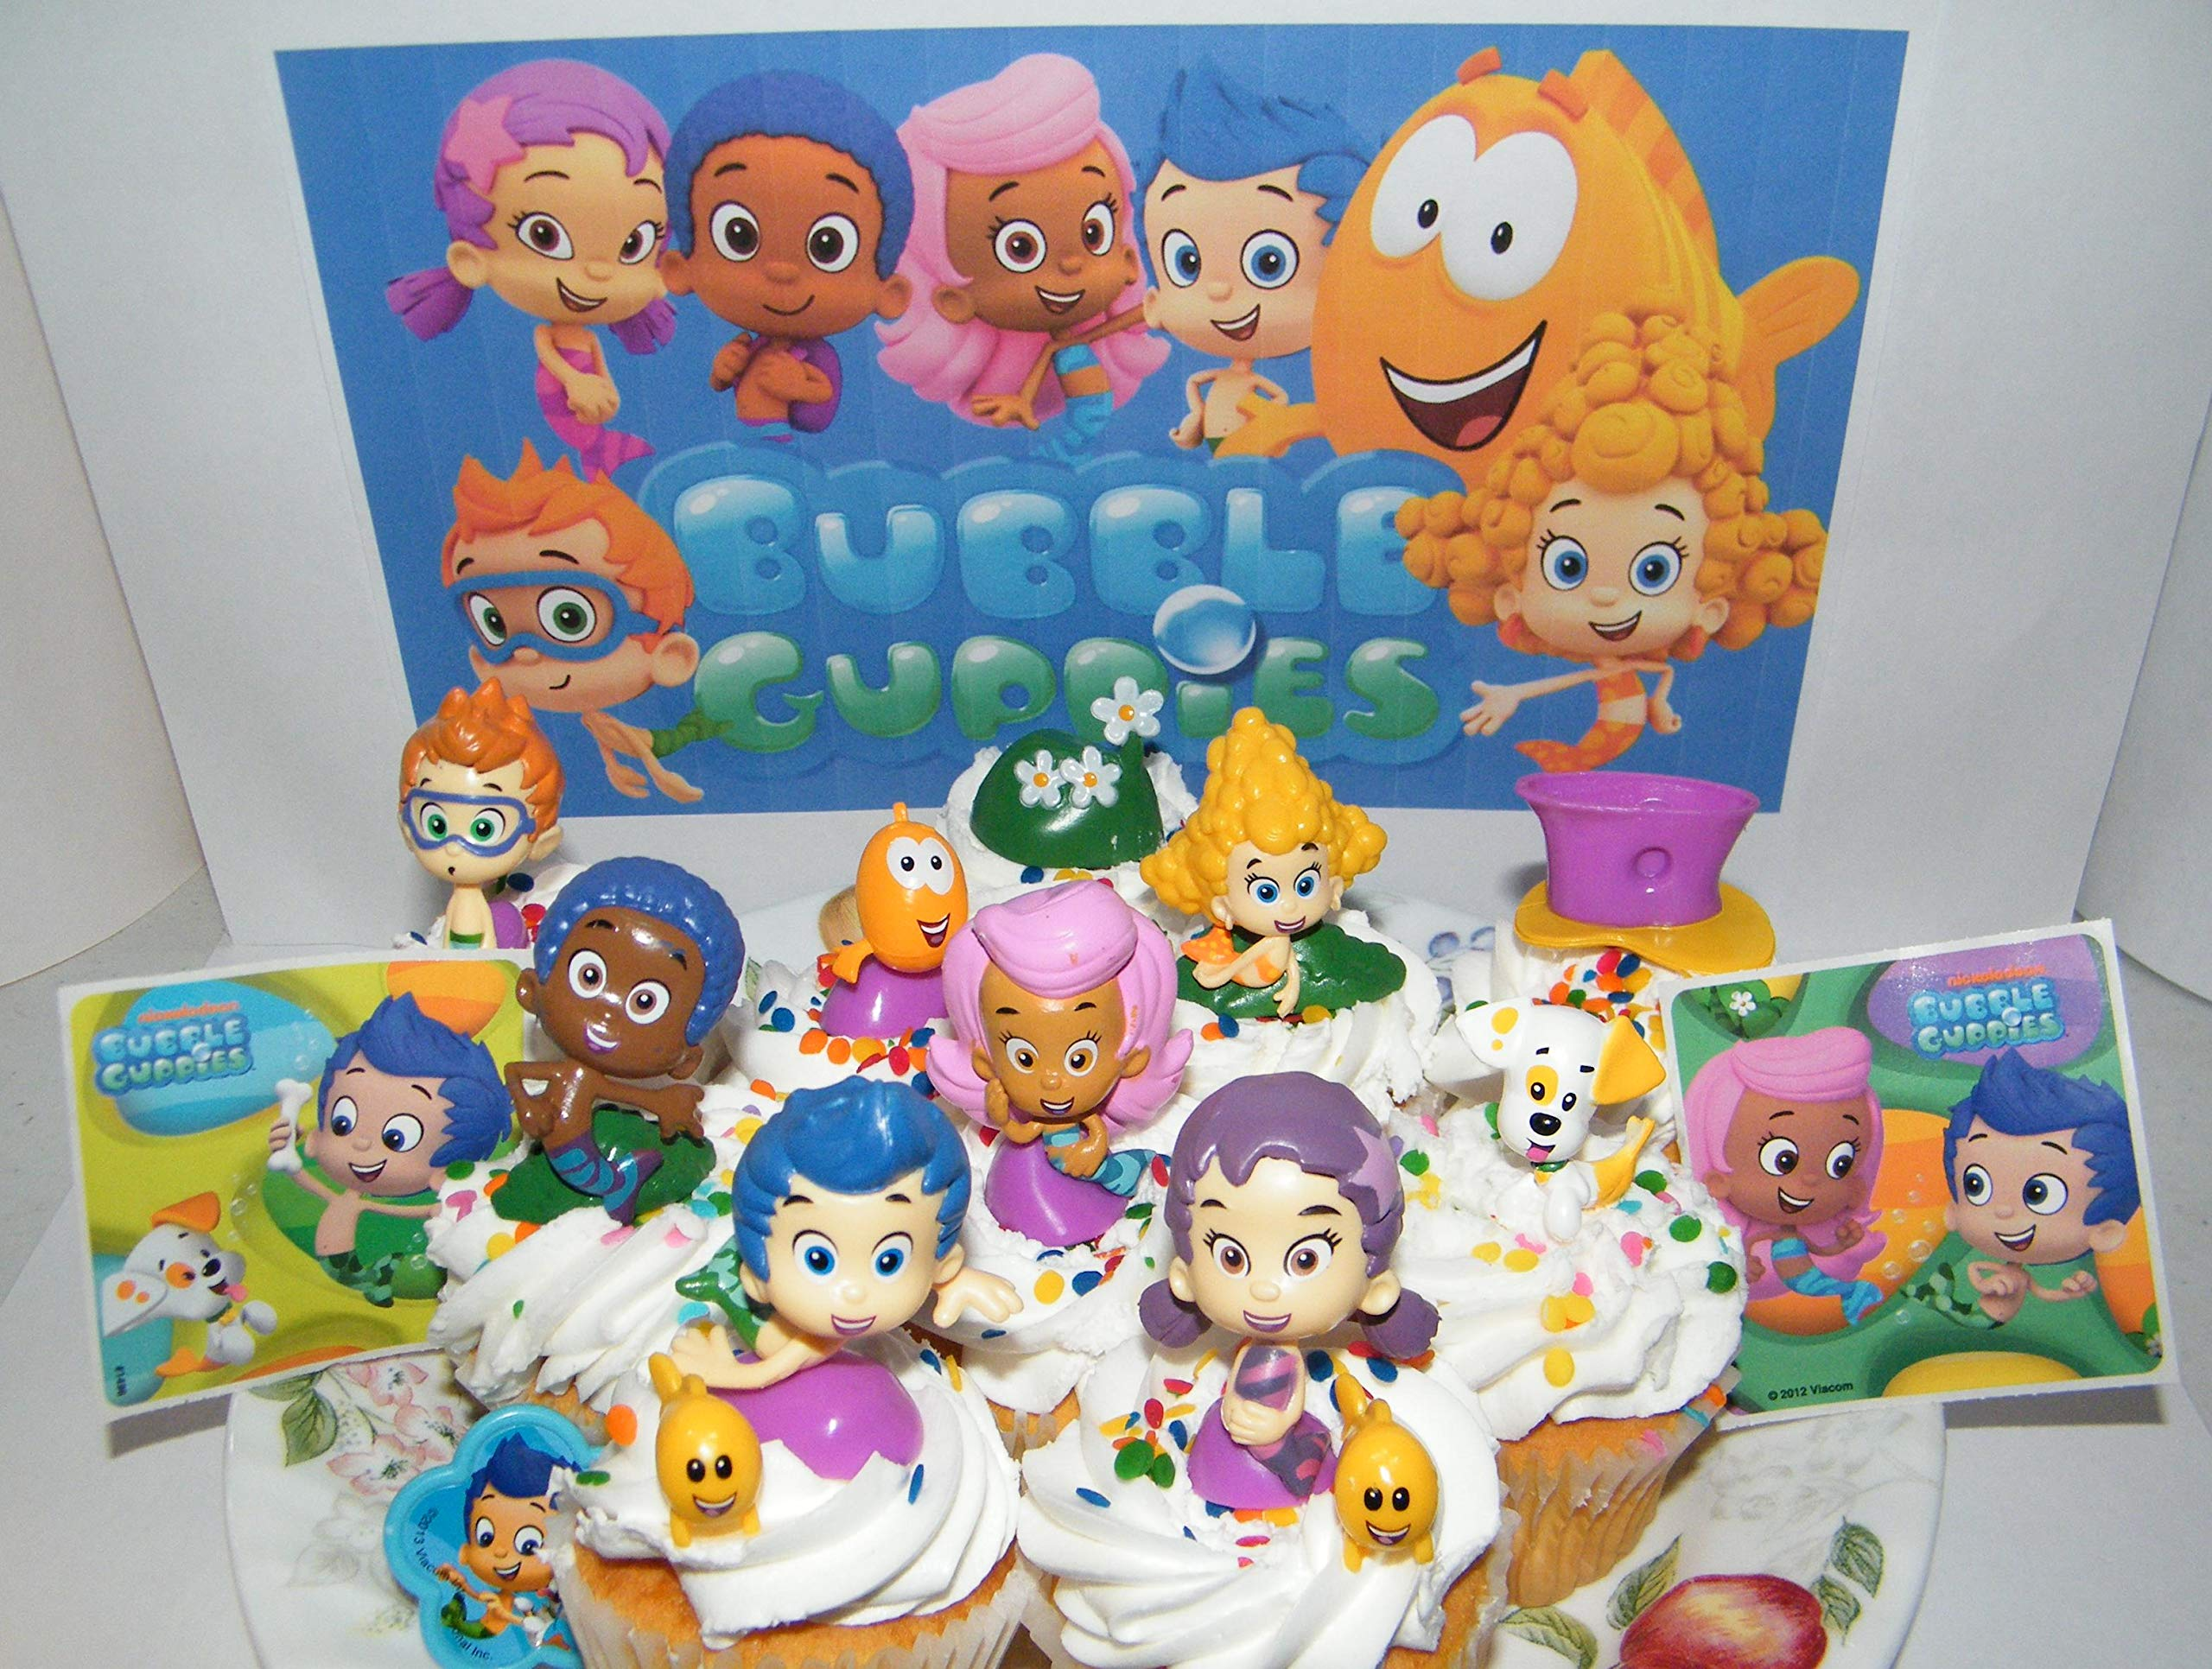 Bubble Guppies Deluxe Cake Toppers Cupcake Decorations 15 Set with 12 Figures, Stickers and BGRing Featuring Gil, Molly, Bubble Puppy and Much More! by Party Fun